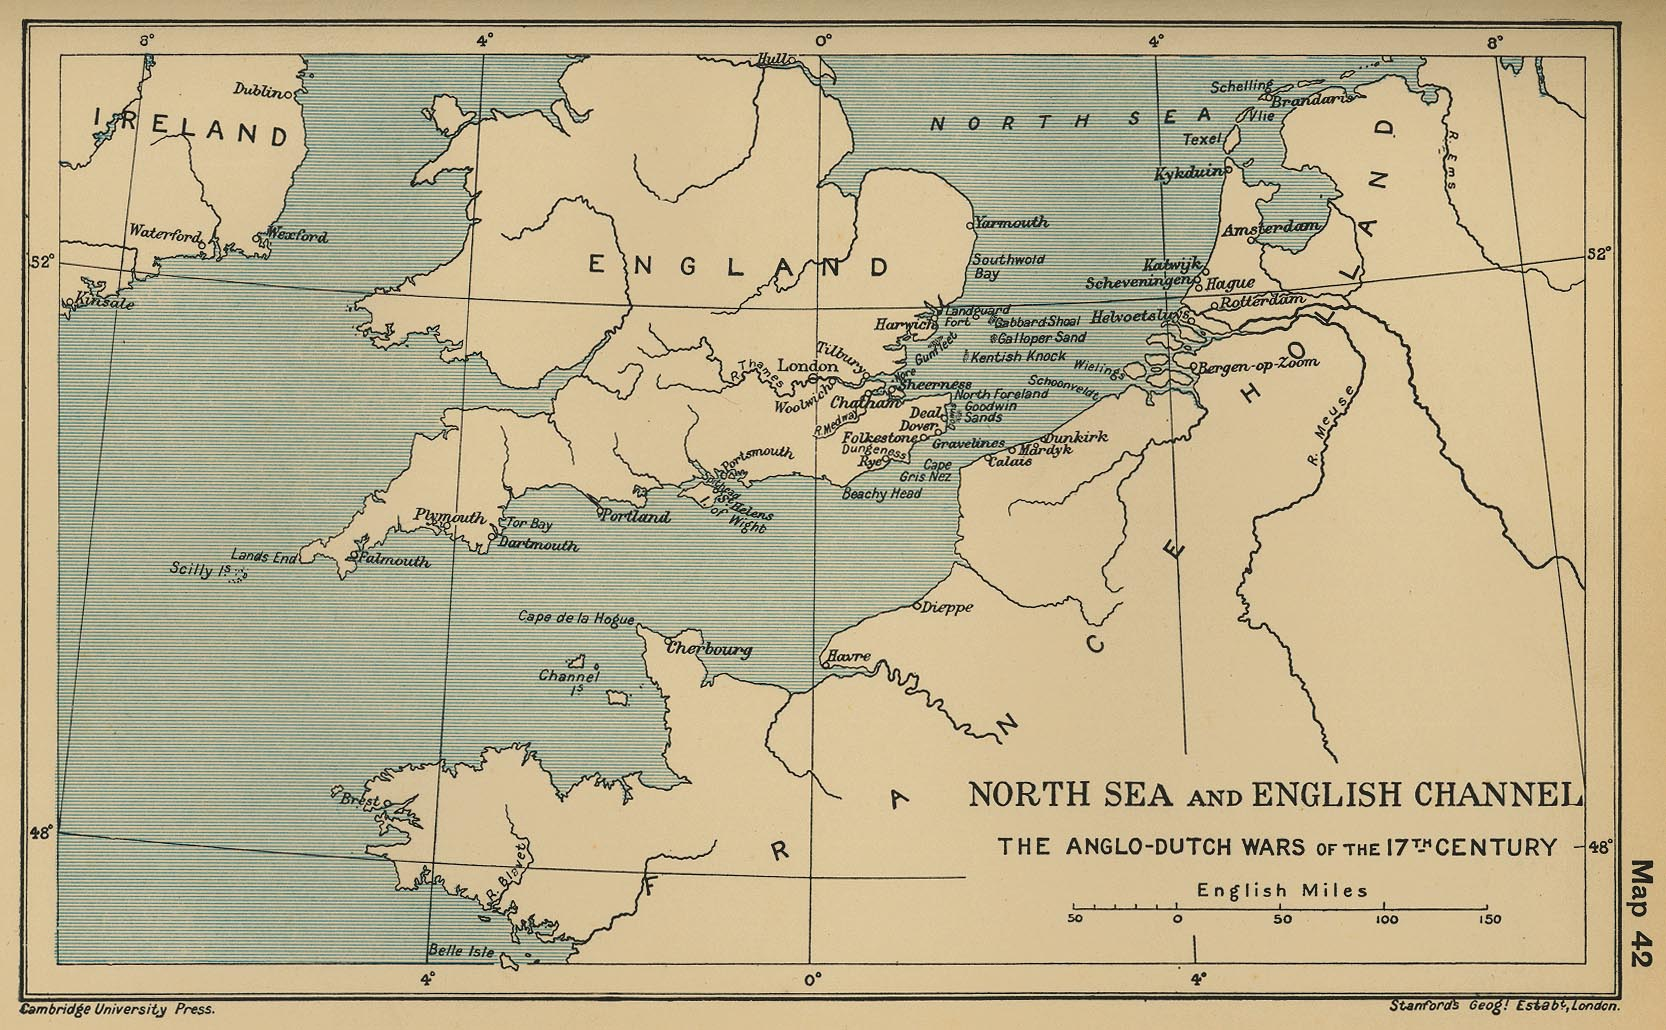 Map 41 North Sea And English Channel The Anglo Dutch Wars Of The 17th Century